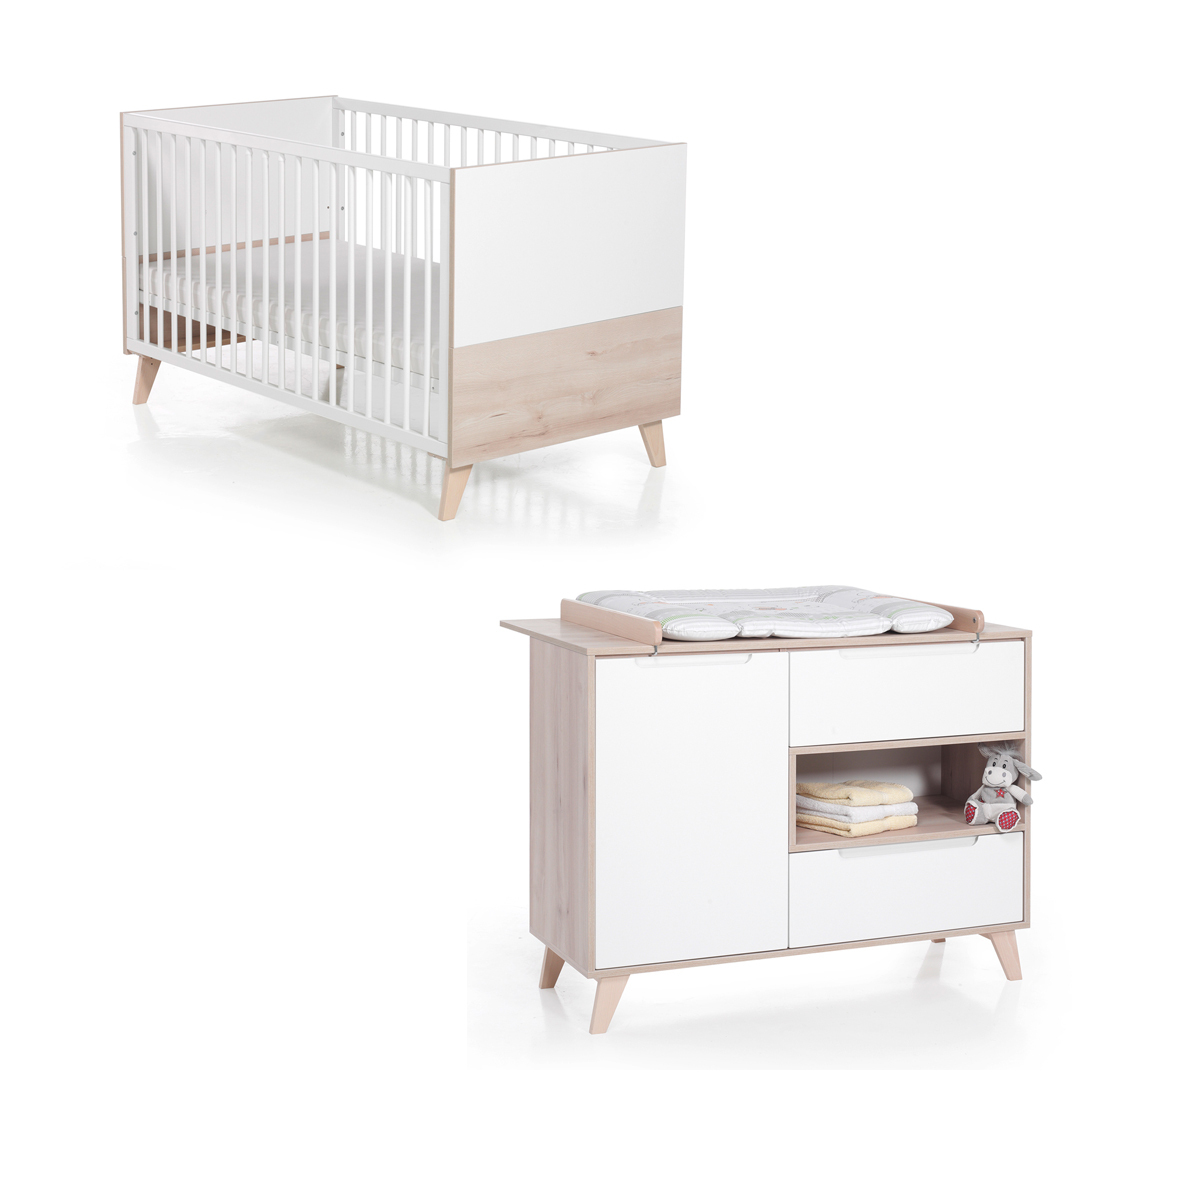 Geuther Chambre Duo Lit & Commode - Collection Mette - Chambre ...